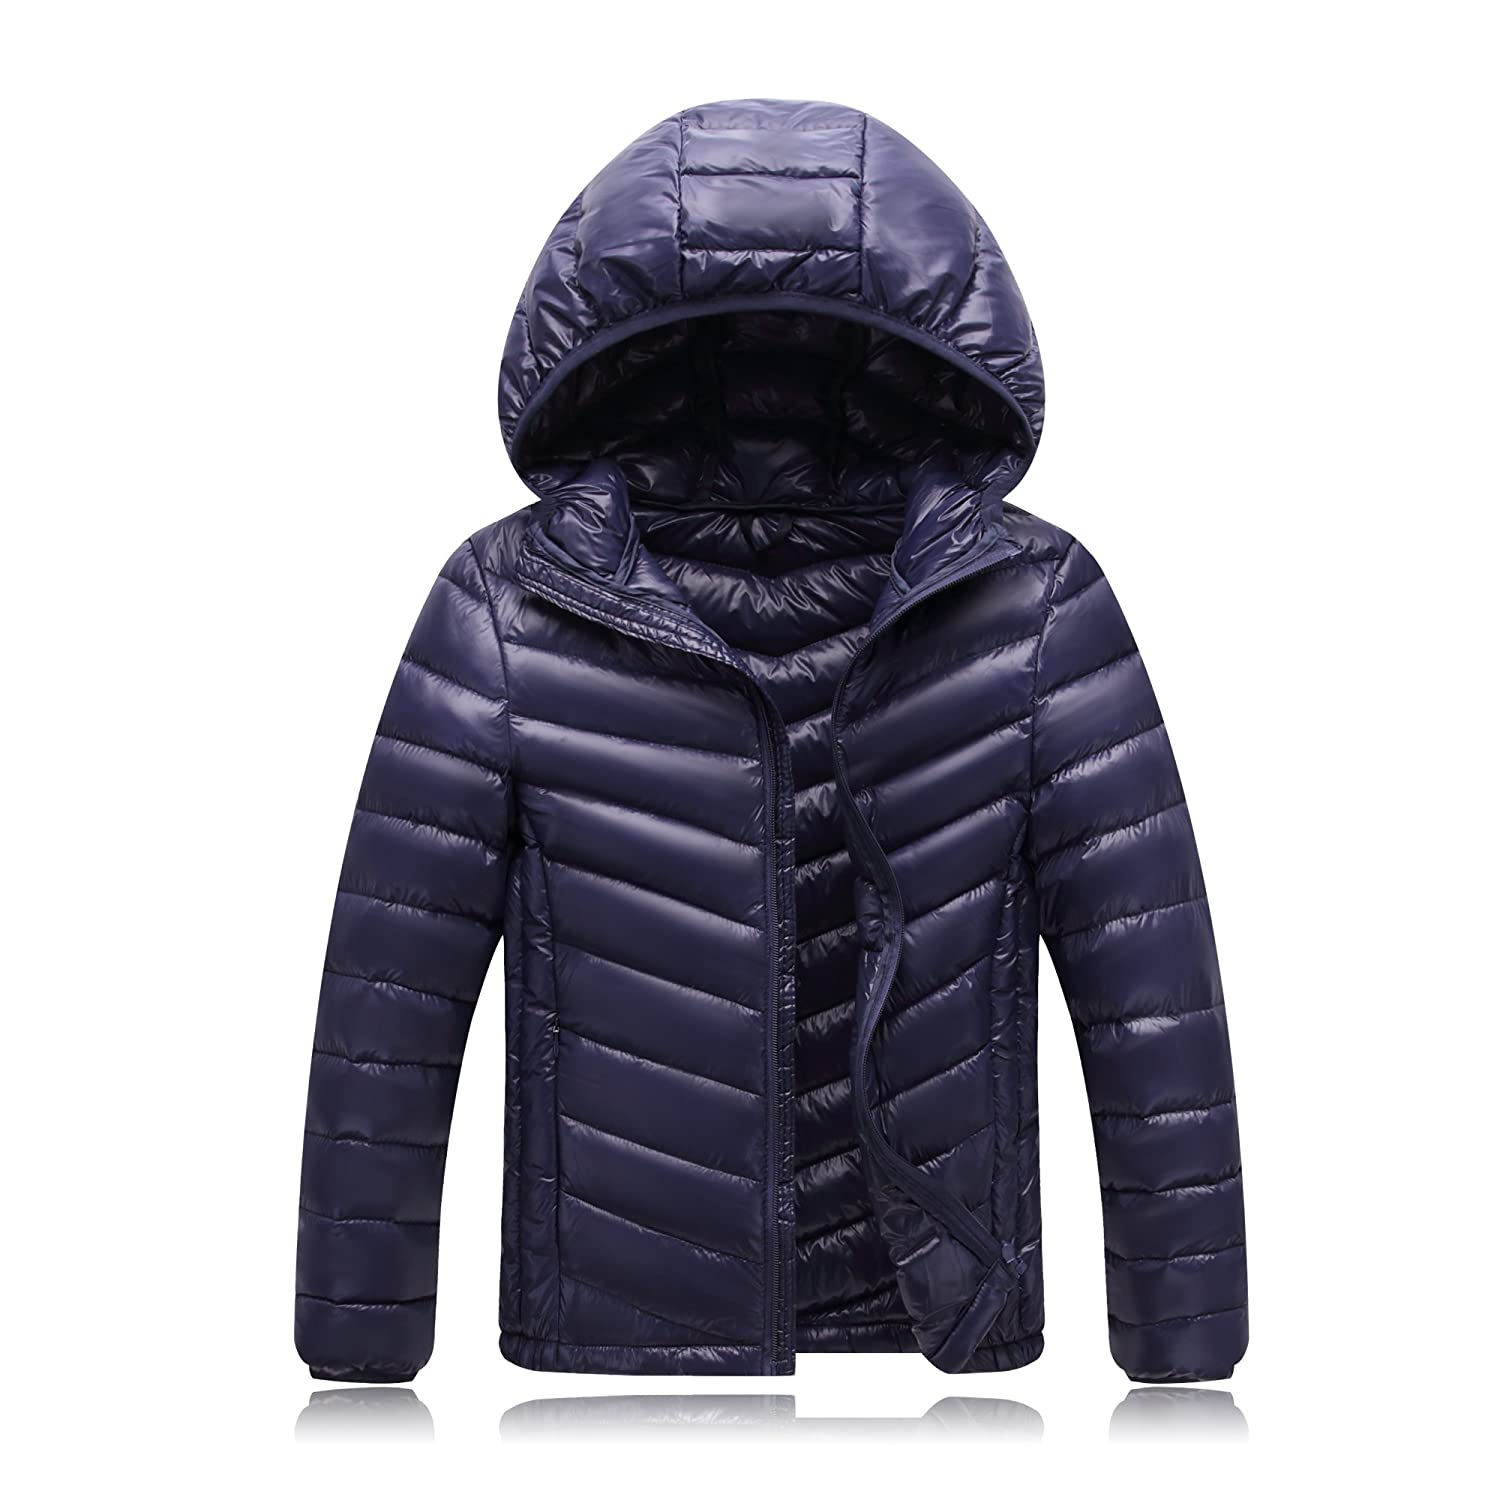 Shengdilu Unisex Kids Boys Girls Down Puffer Jacket Parka Coat Hood Outwear Outfit